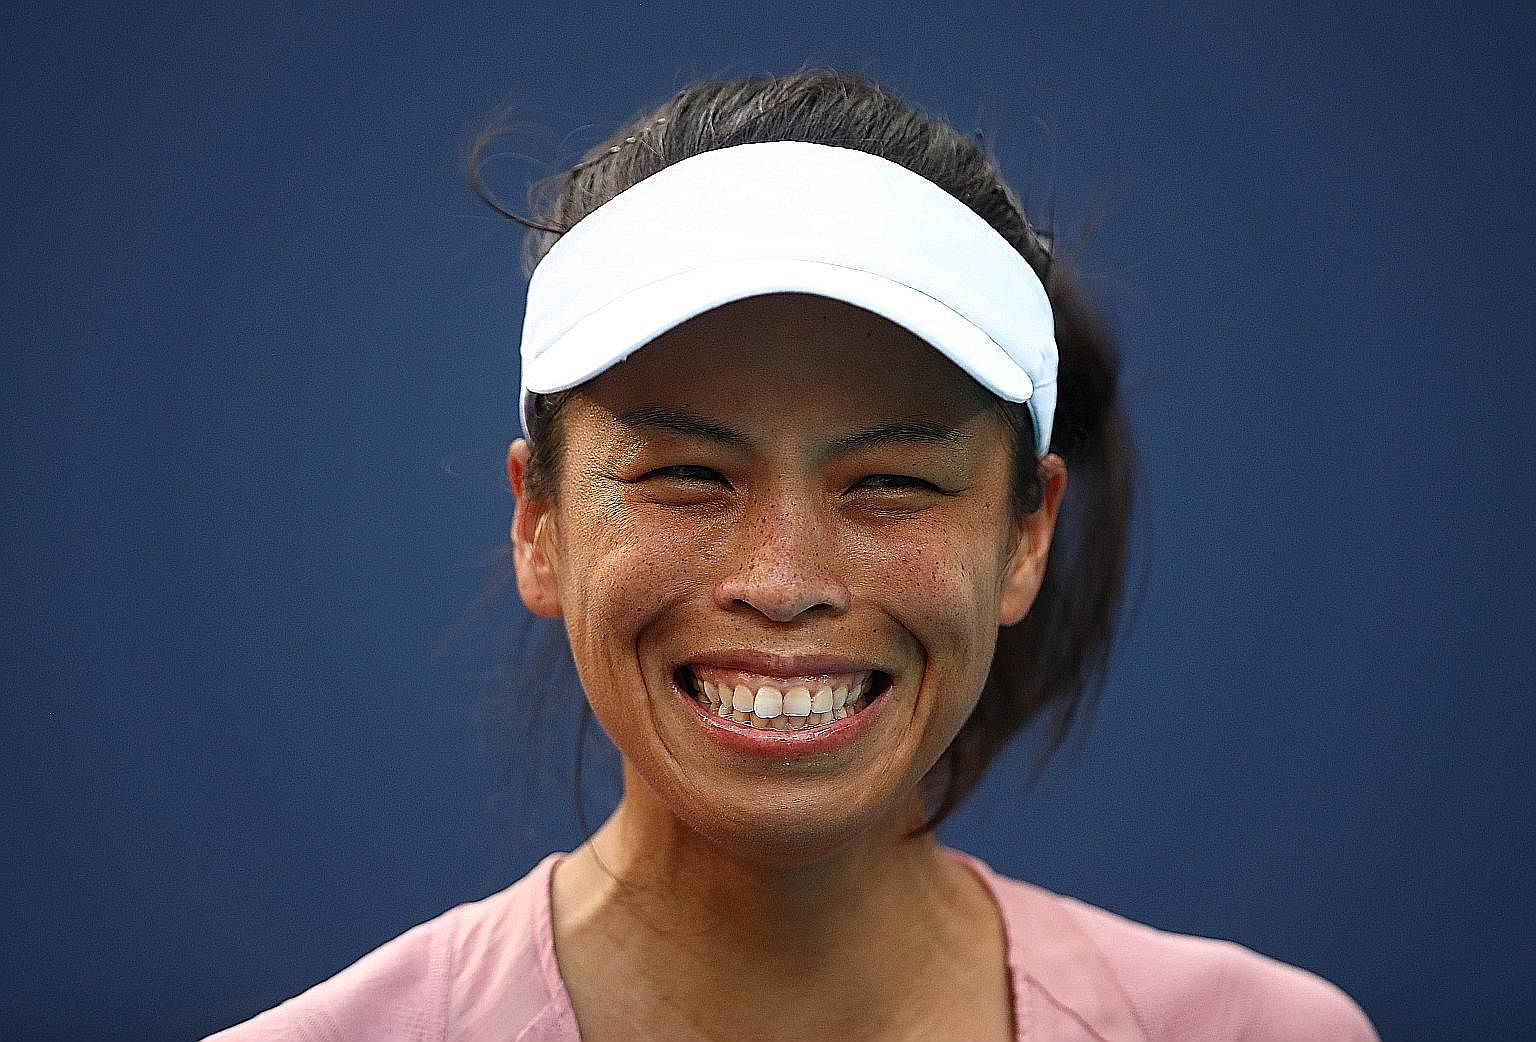 After her defeat by Hsieh Su-wei in Miami on Saturday, Naomi Osaka may lose her No. 1 ranking, with Romania's Simona Halep and Czech Petra Kvitova closing in on her.